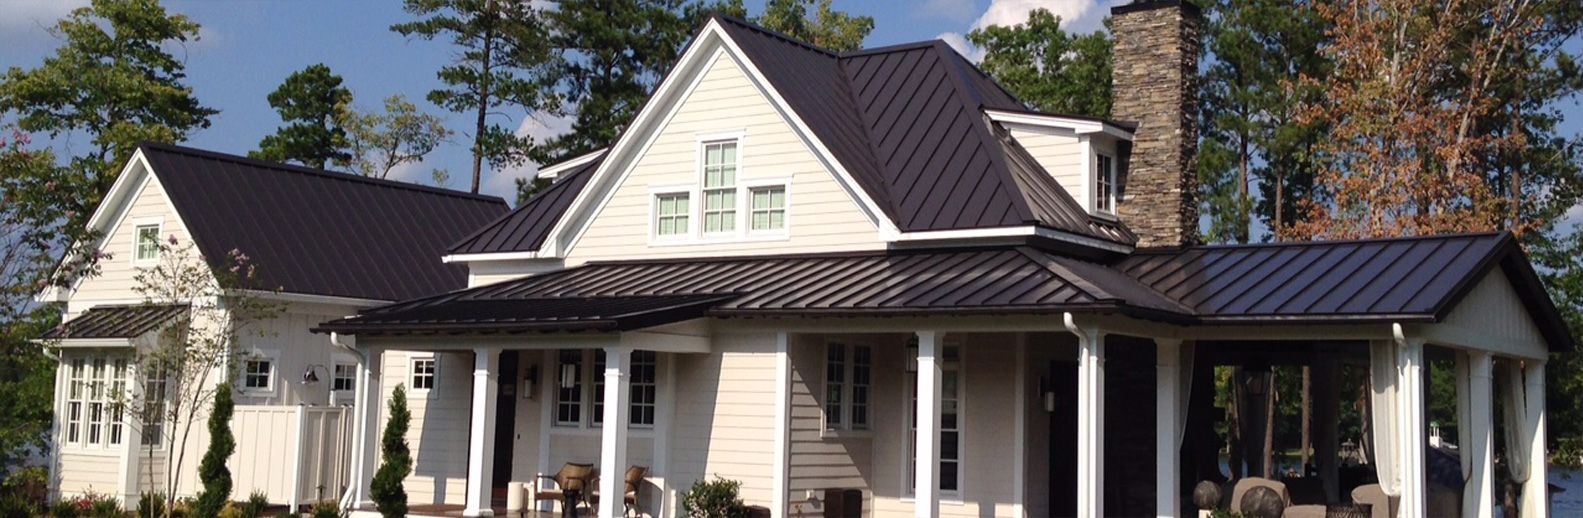 Finding A Good Residential Roofing Company Louisville Ky Who Will Not Cheat You And Value Your Money Has Become Mu Roofing Companies Residential Roofing Roofer